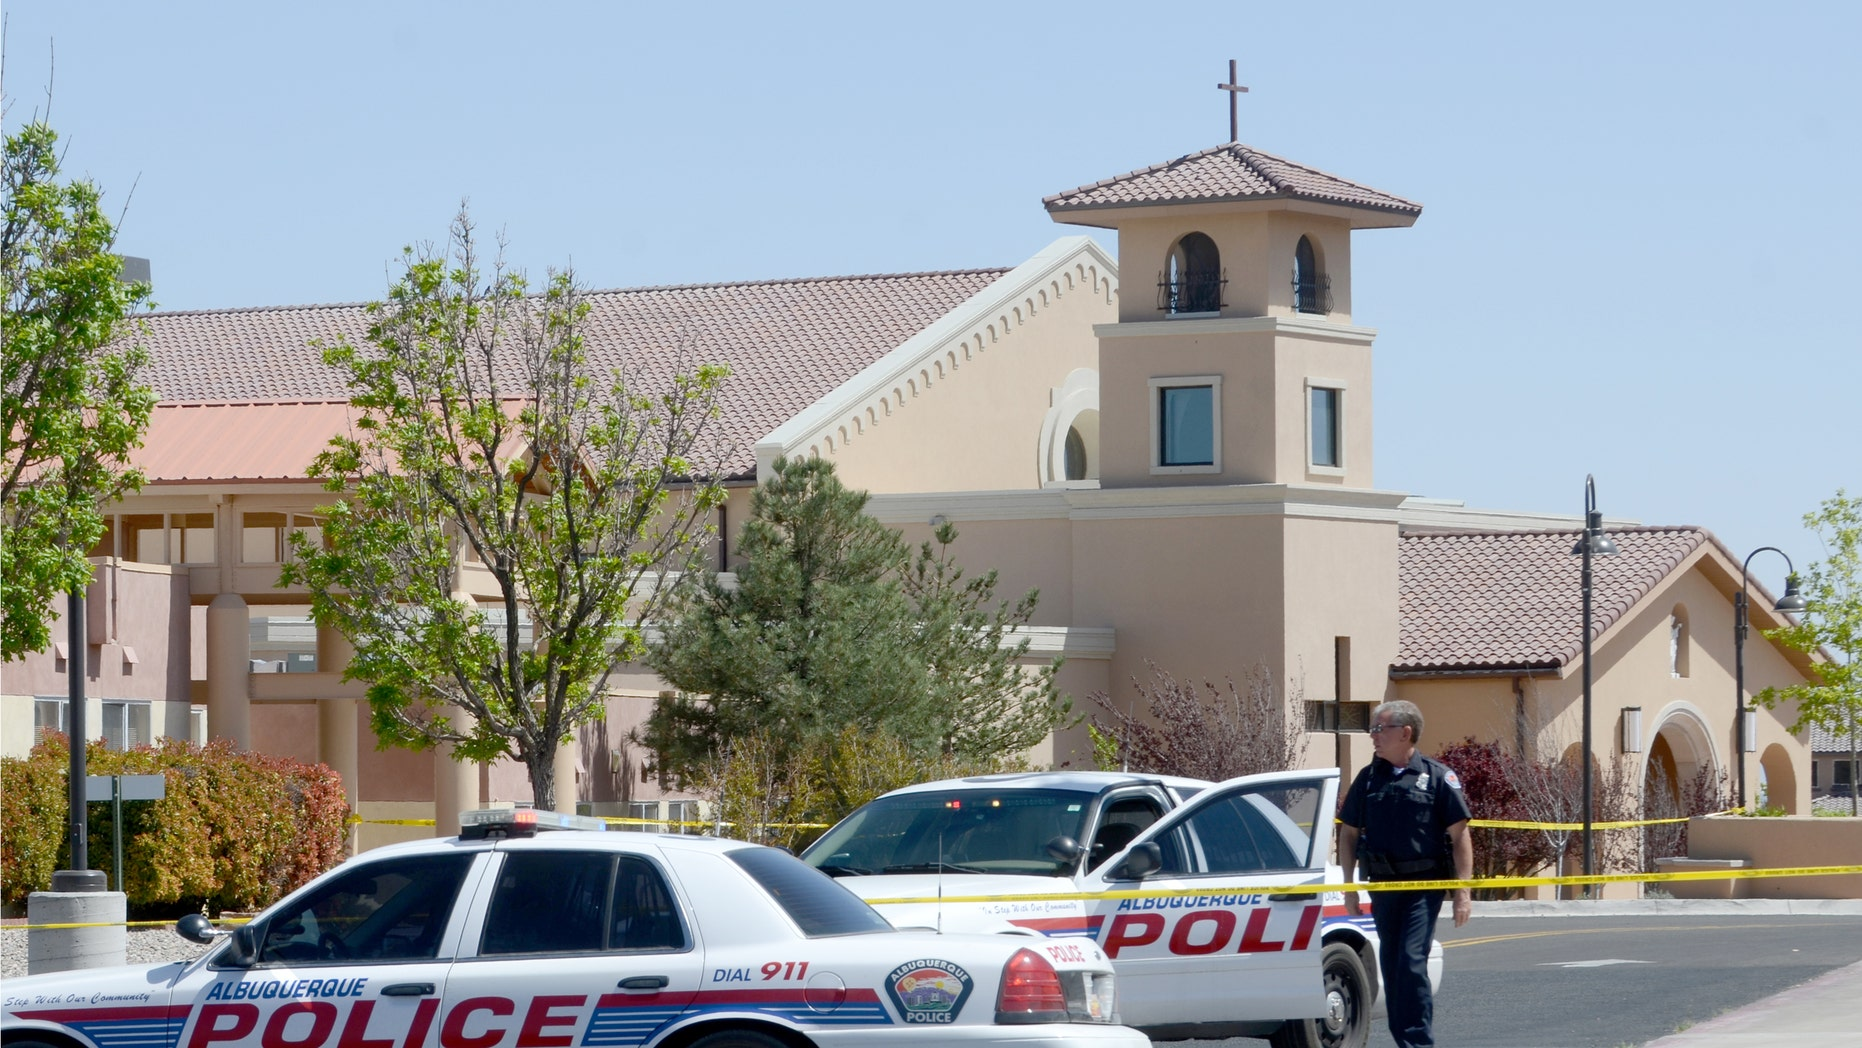 St. Jude Thaddeus Catholic Church, in Albuquerque, N.M., the scene of a multiple stabbing on Sunday, April 28, 2013.